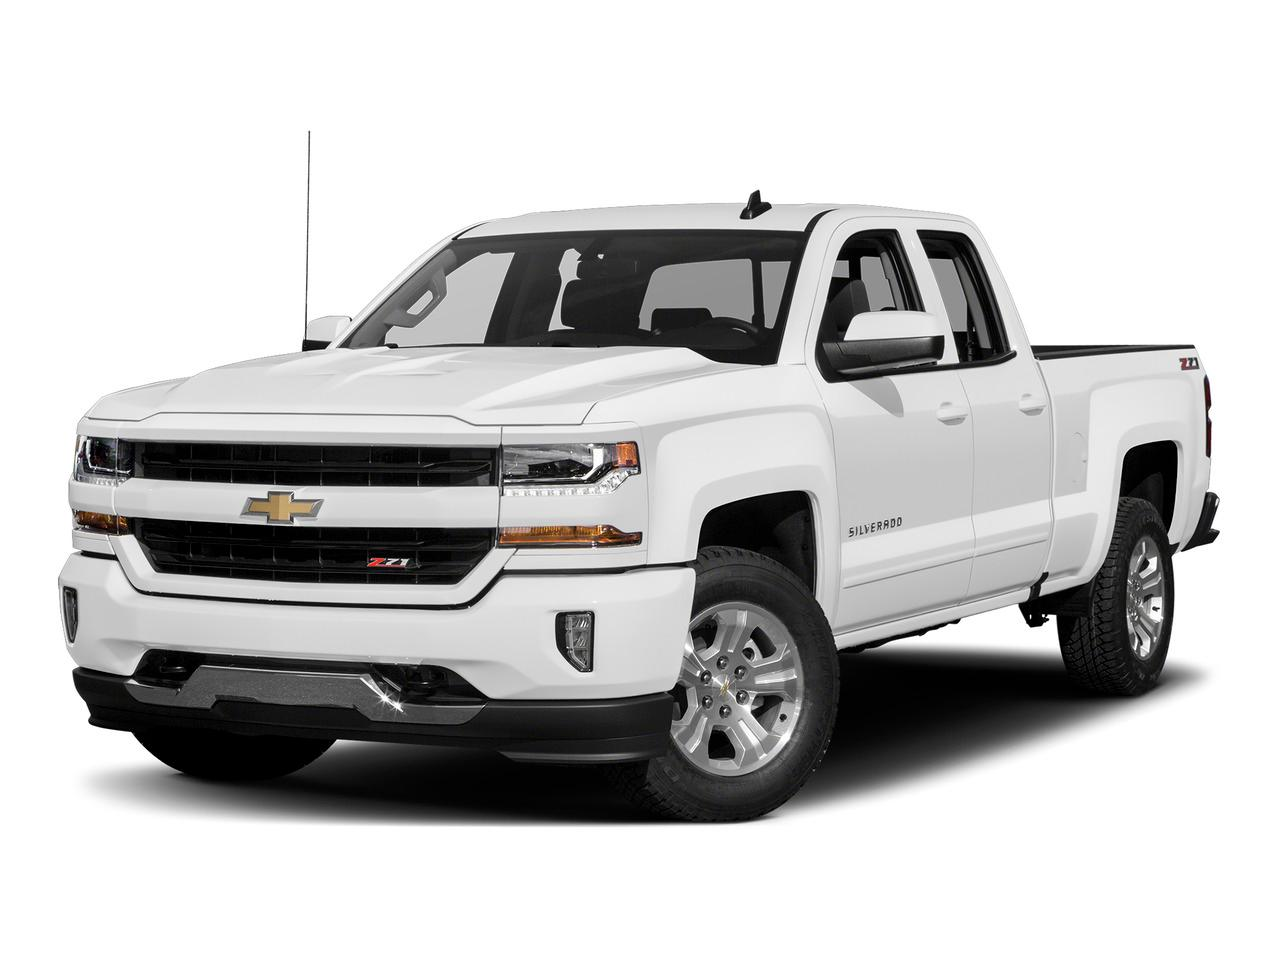 2017 Chevrolet Silverado 1500 Vehicle Photo in Gardner, MA 01440